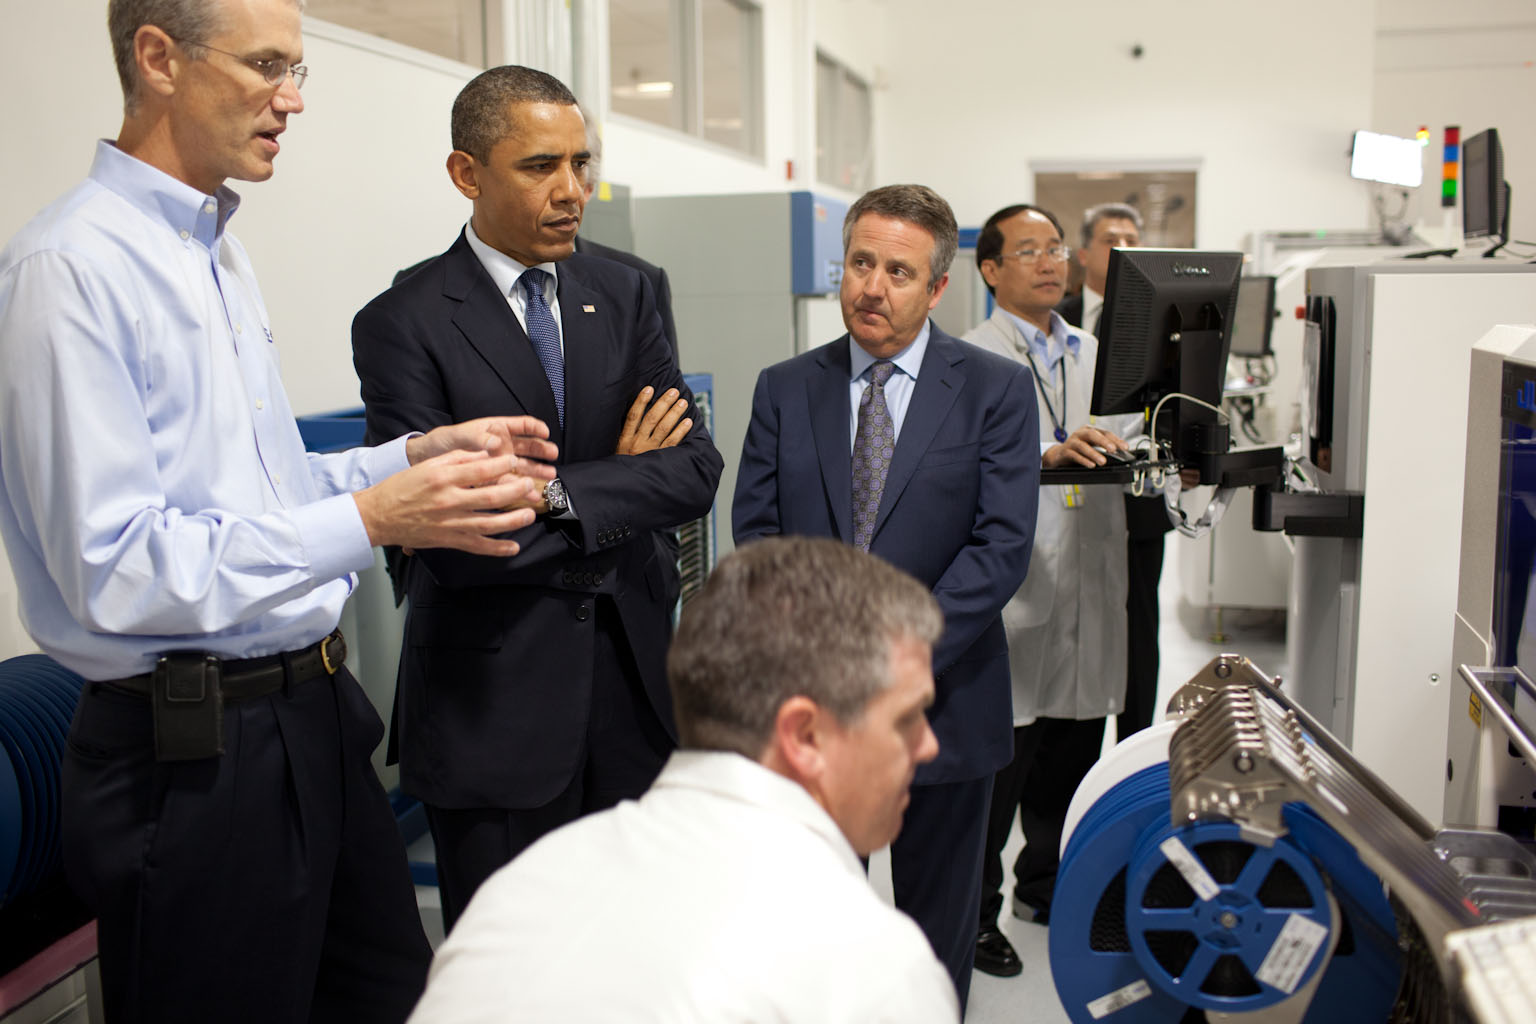 President Obama Tours Cree, Inc in Durham, N.C.